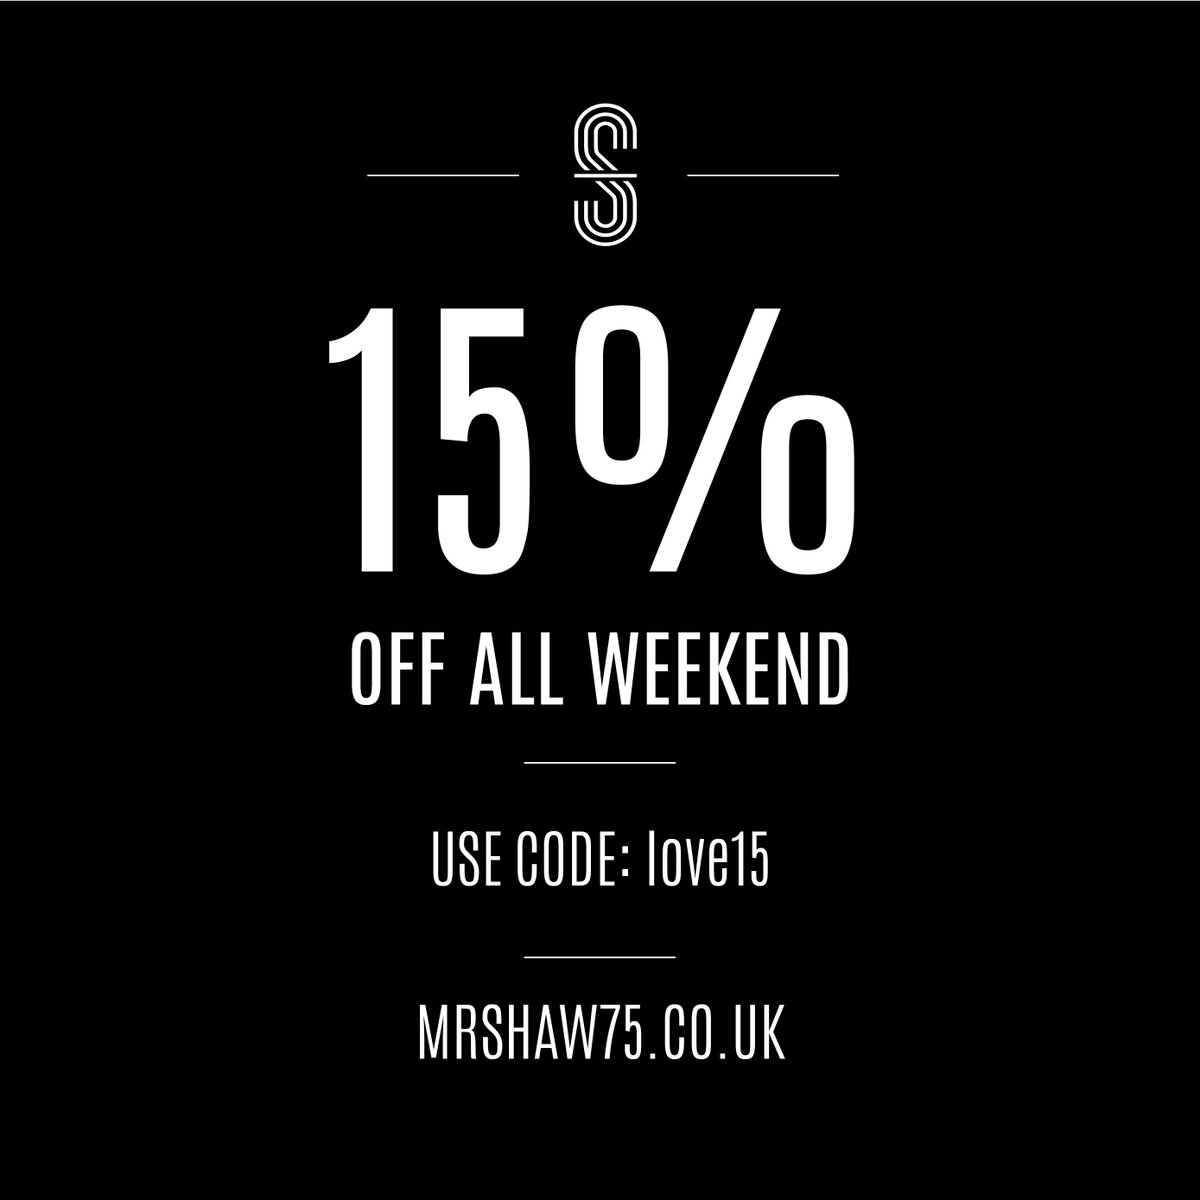 Don't miss out on your last opportunity to get 15% off all our products this weekend! Head to the shop now! >>>> https://mrshaw75.co.uk/shop/  Just use discount code: love15   *Valid until Monday 17th*  #mensfashion #mensclothes #mrshaw #mensstyle #discount #valentinespic.twitter.com/7DxSfmqCfj